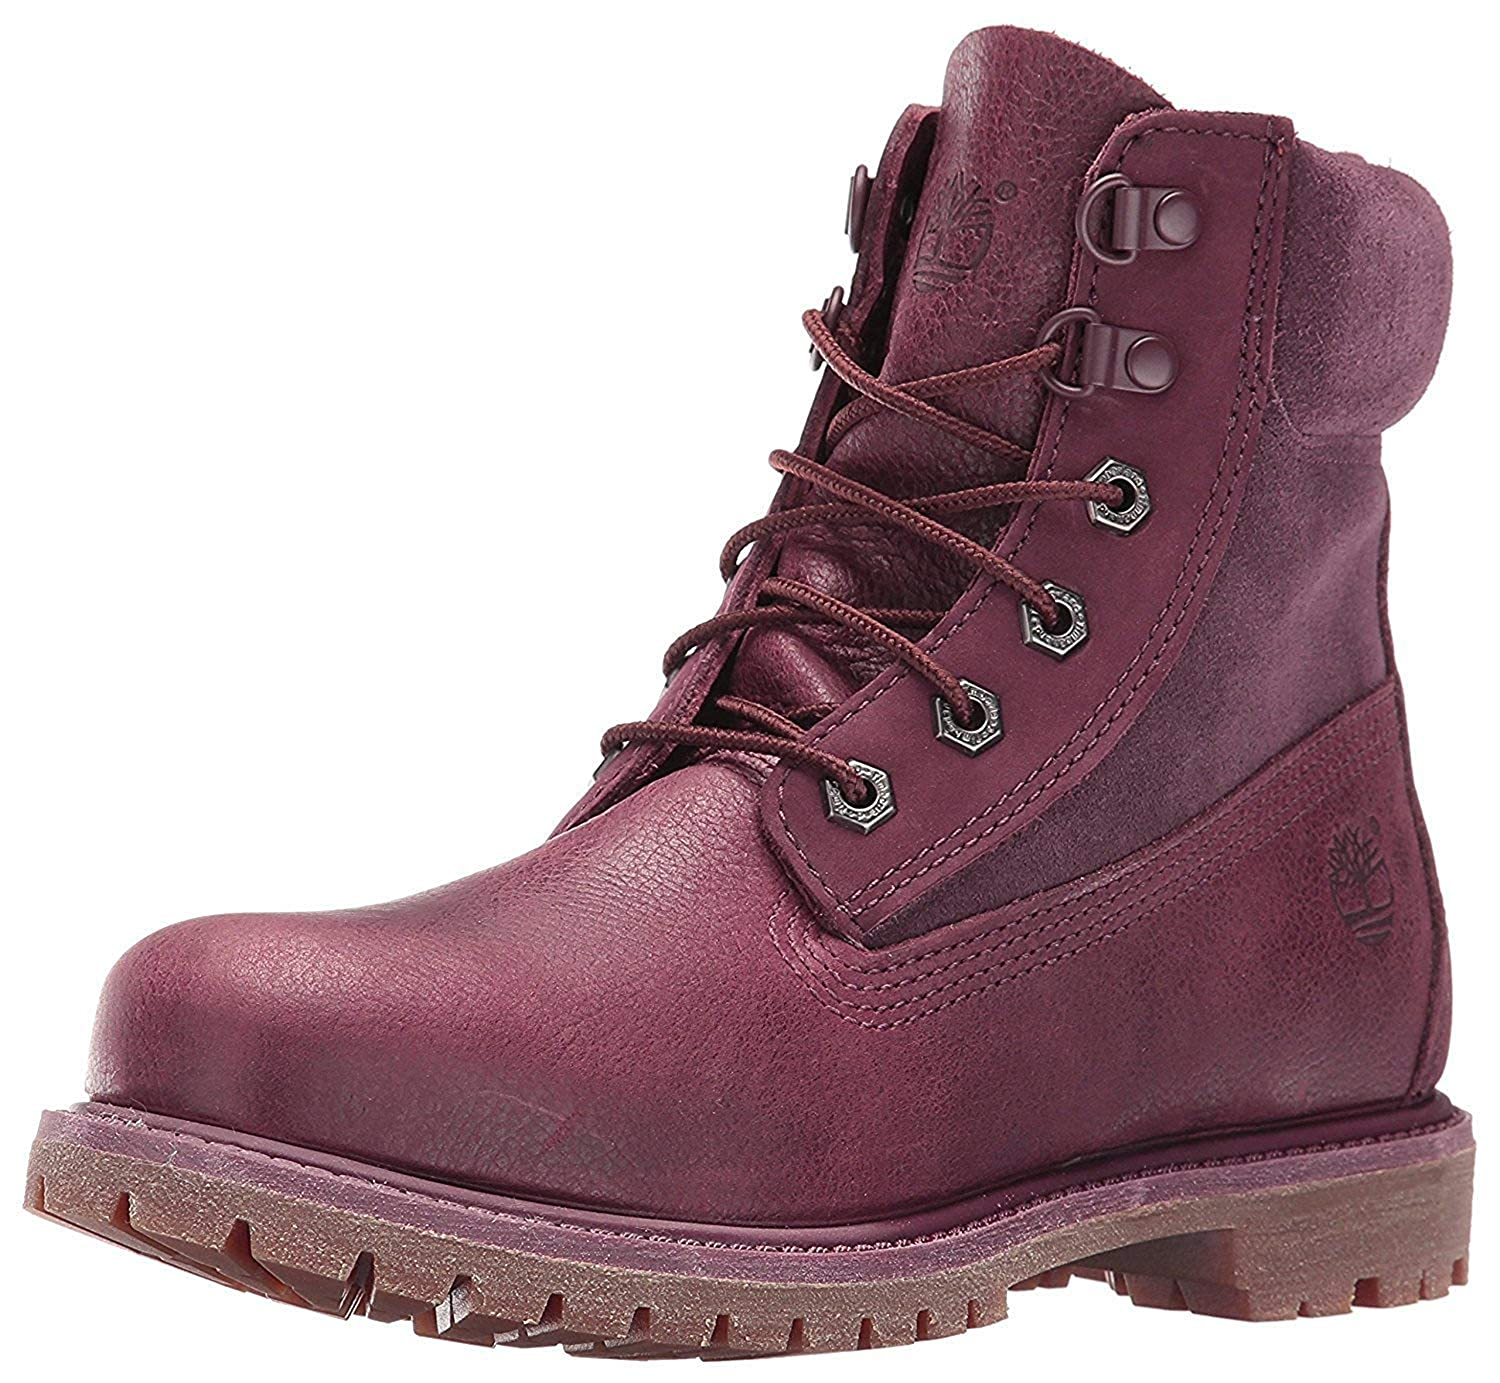 Timberland Women's 6 Inch Premium Double D Ring WP Boot